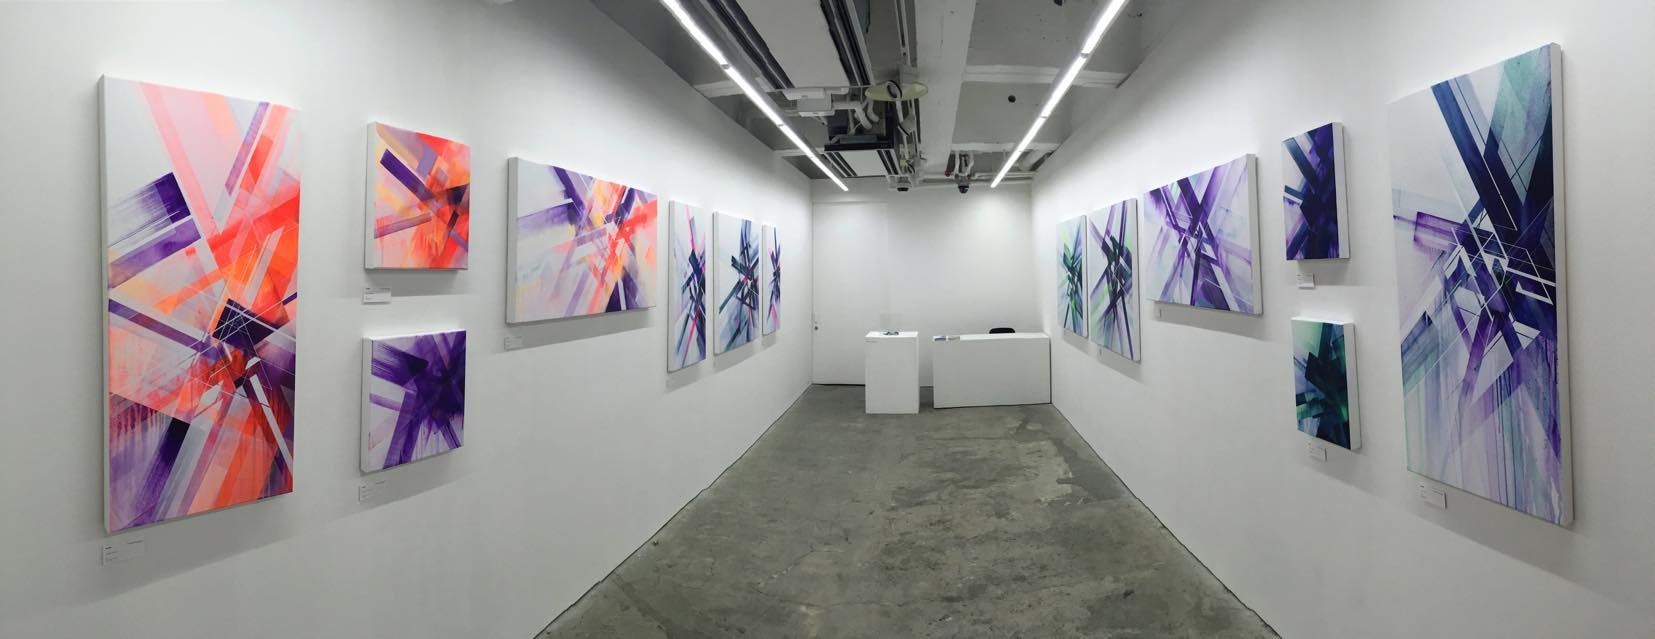 Expo Nawer : Colors in Shapesland Tokyo